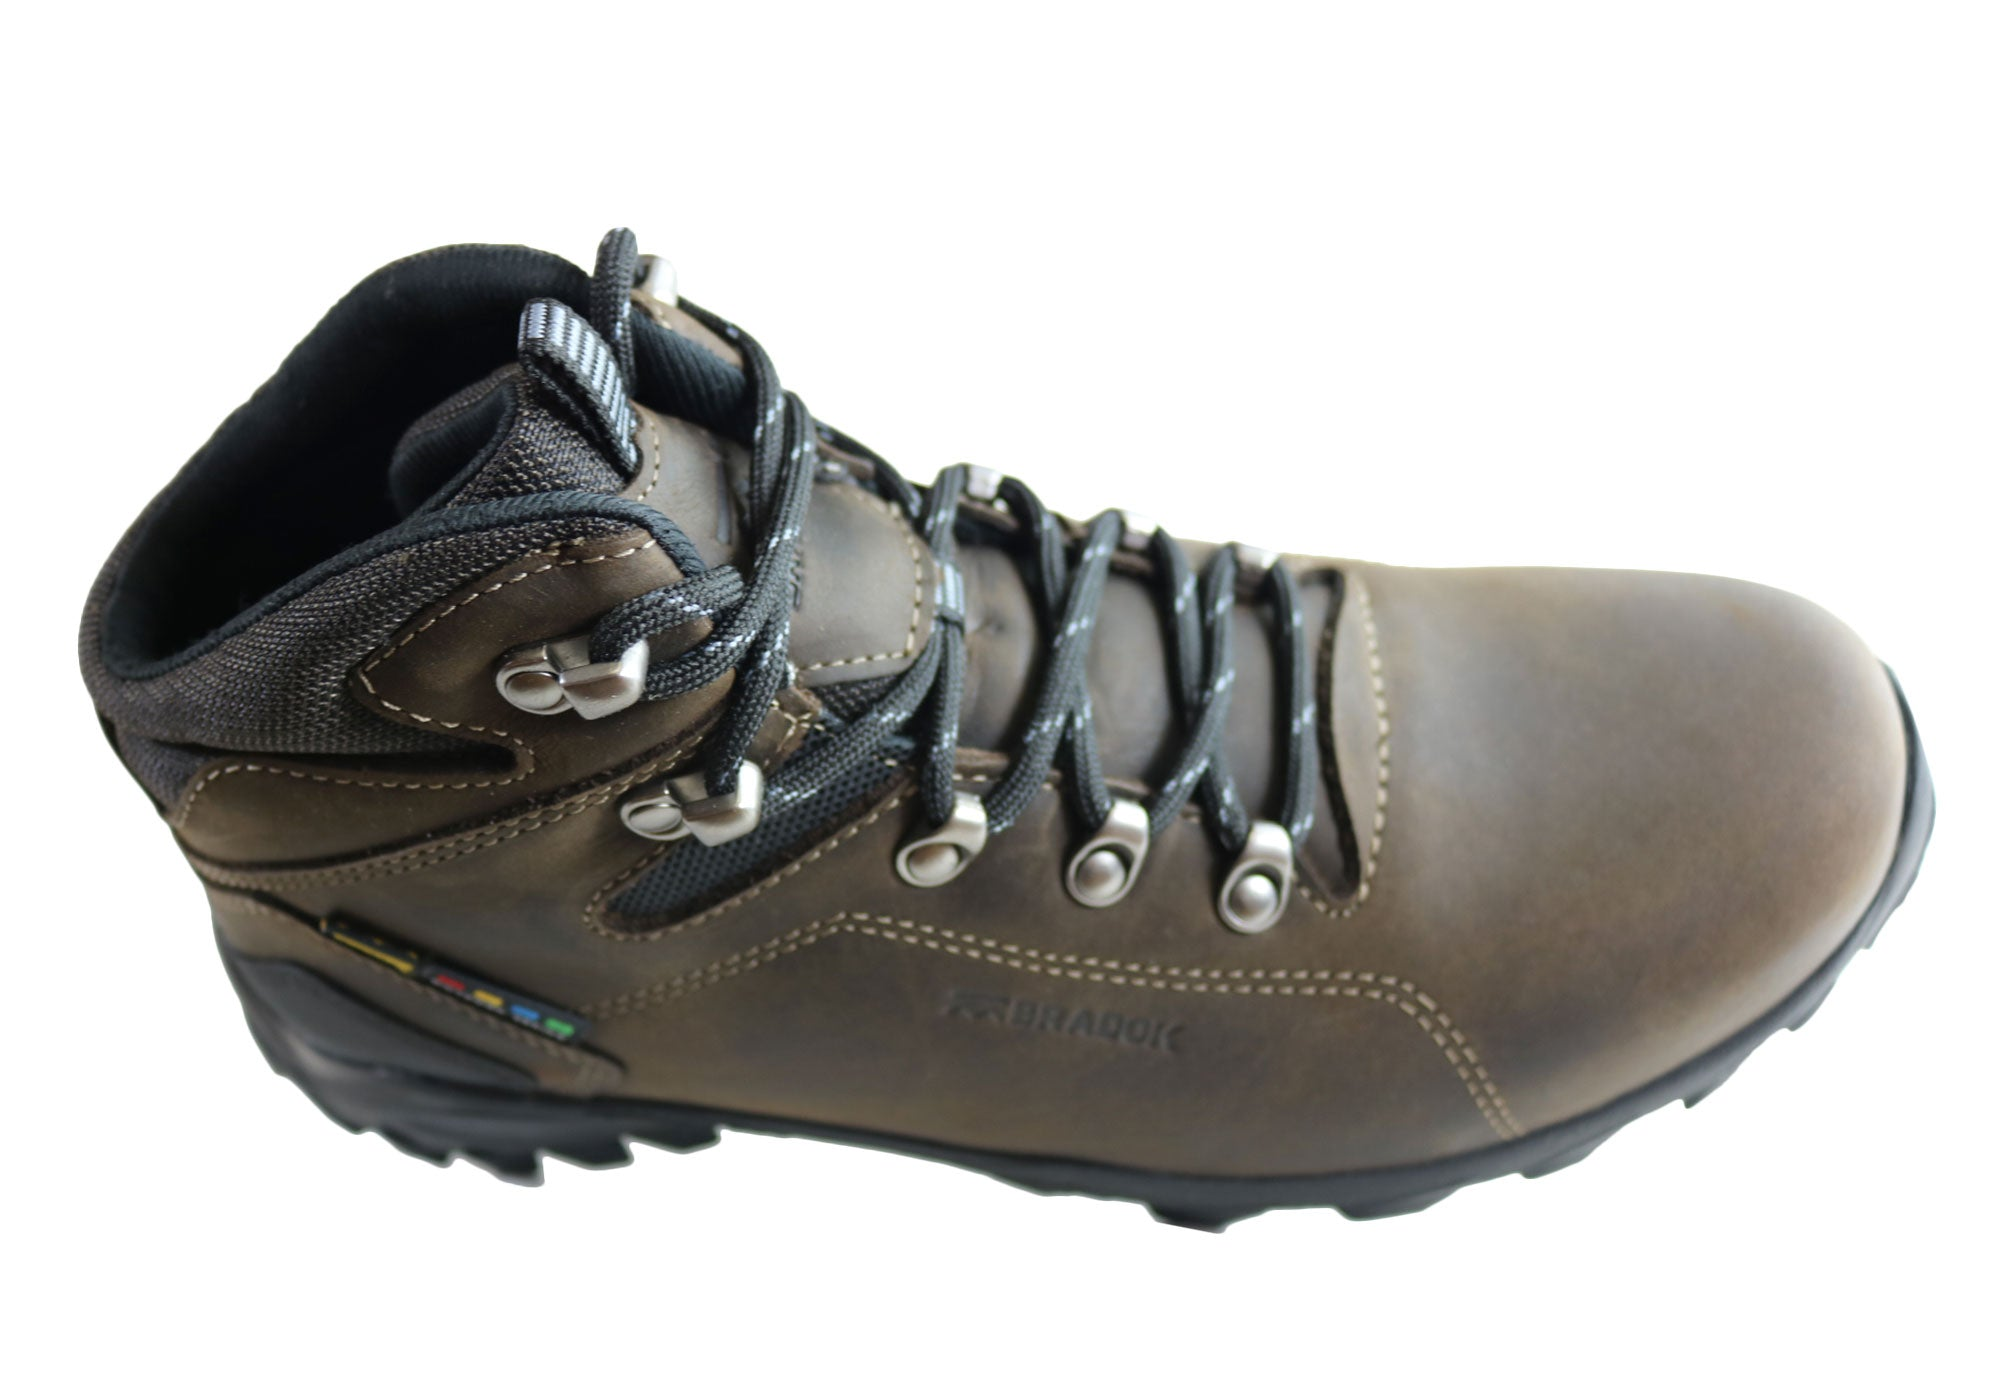 Bradok Raptor Mens Comfortable Leather Hiking Boots Made In Brazil